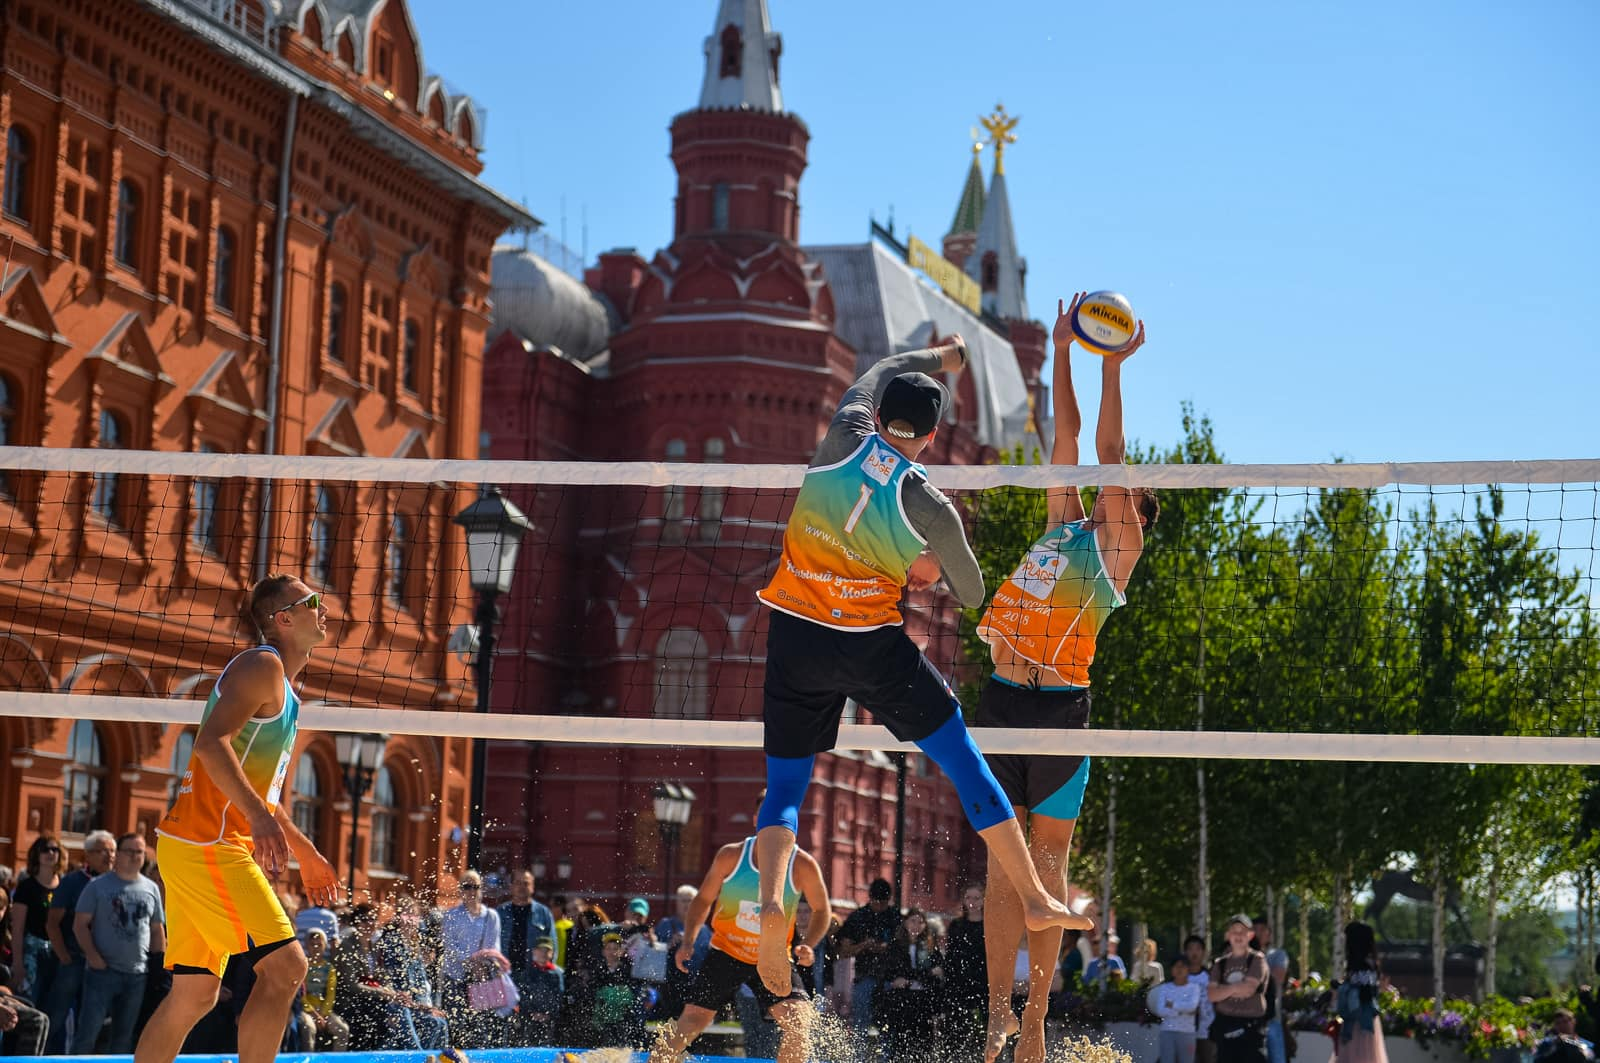 Babushkinsky Park of Culture and Rest in Moscow: photos, description, activities, leisure options, visitor reviews 91